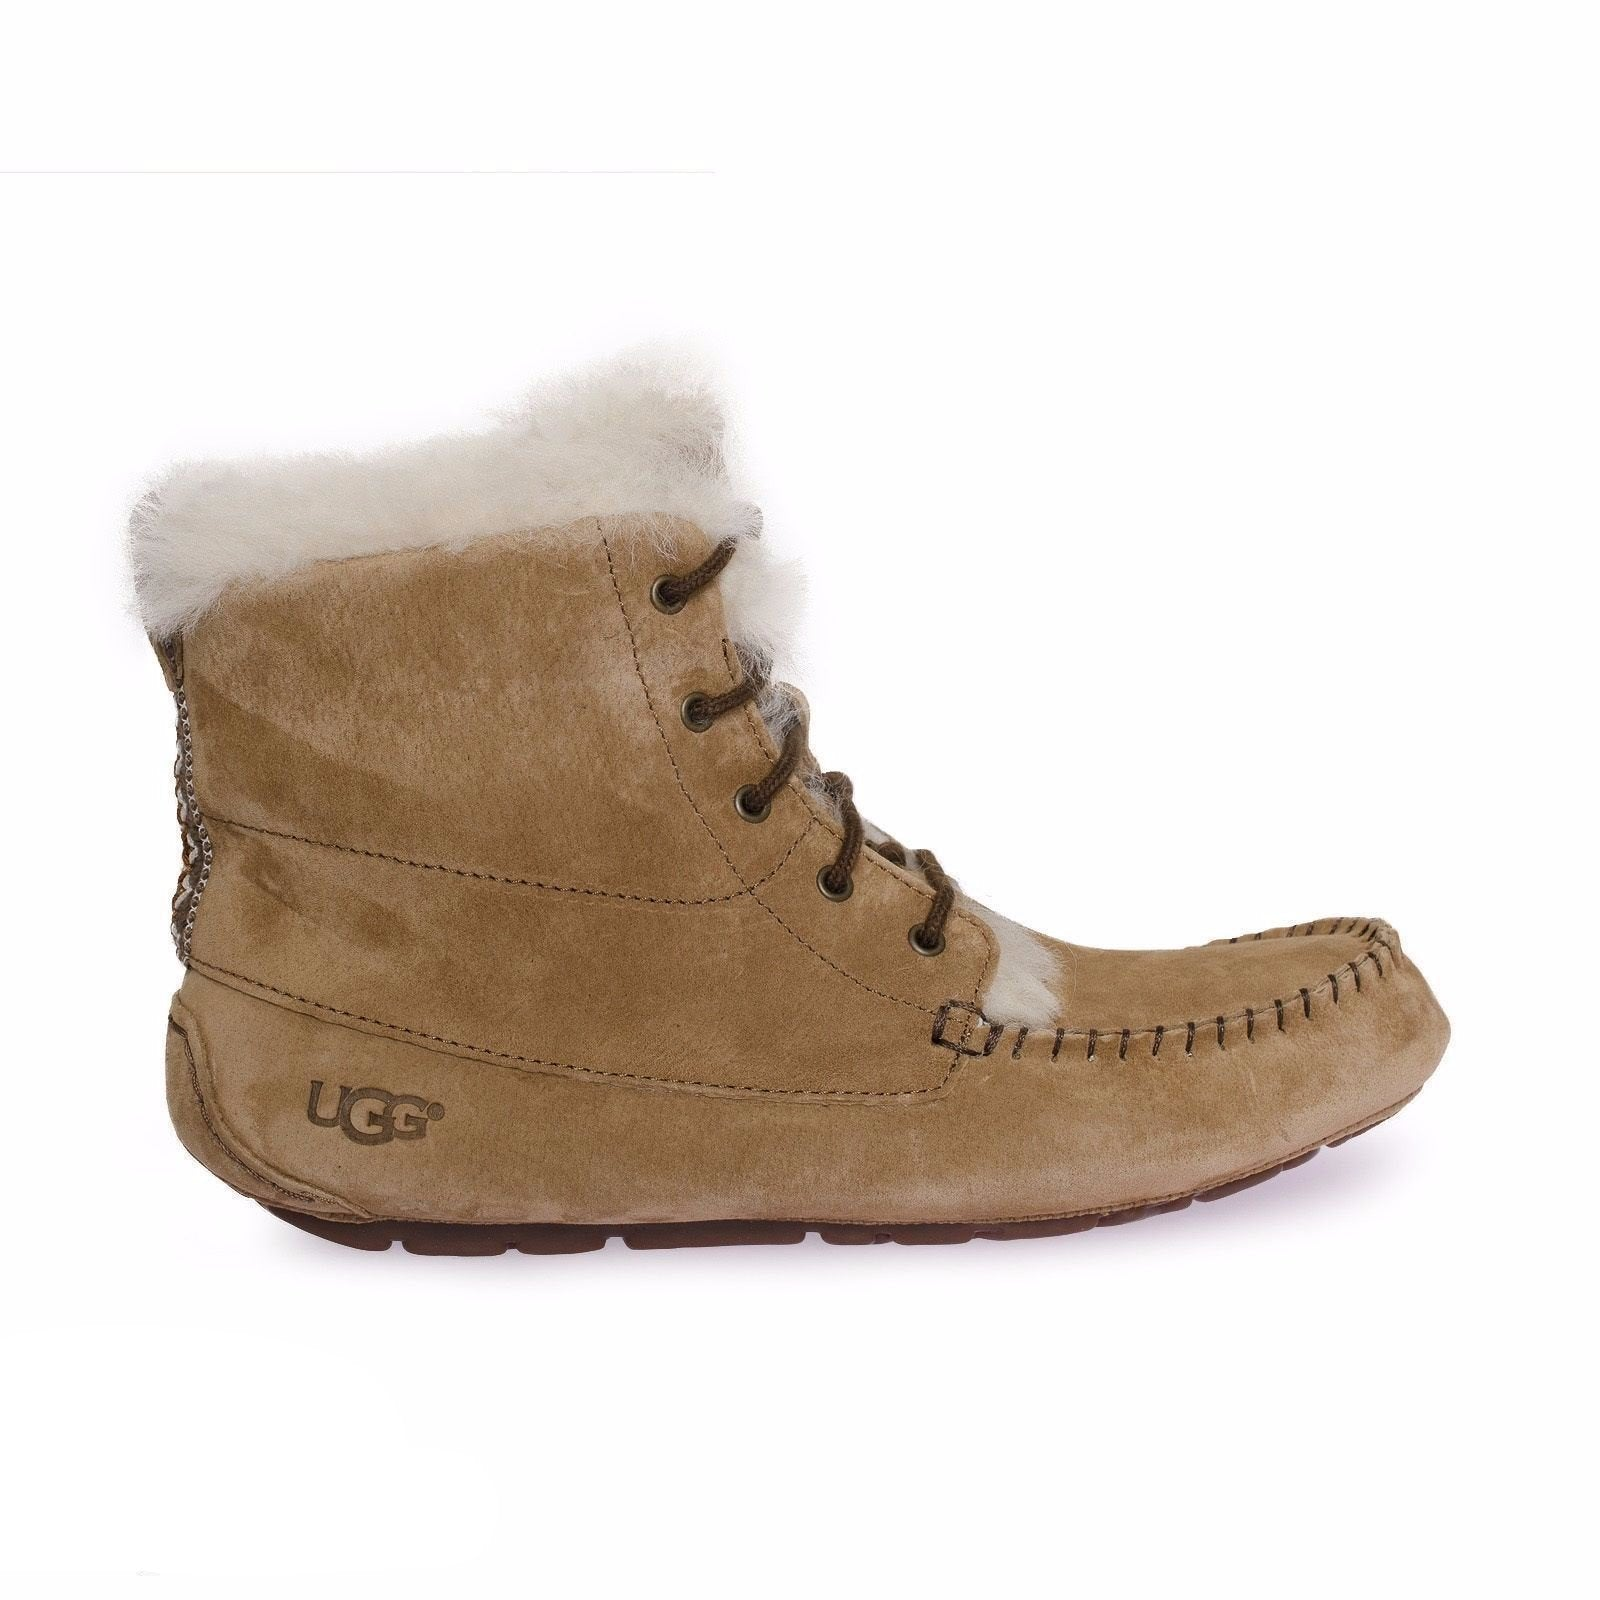 7eb07659678 UGG Chickaree Chestnut Shoes